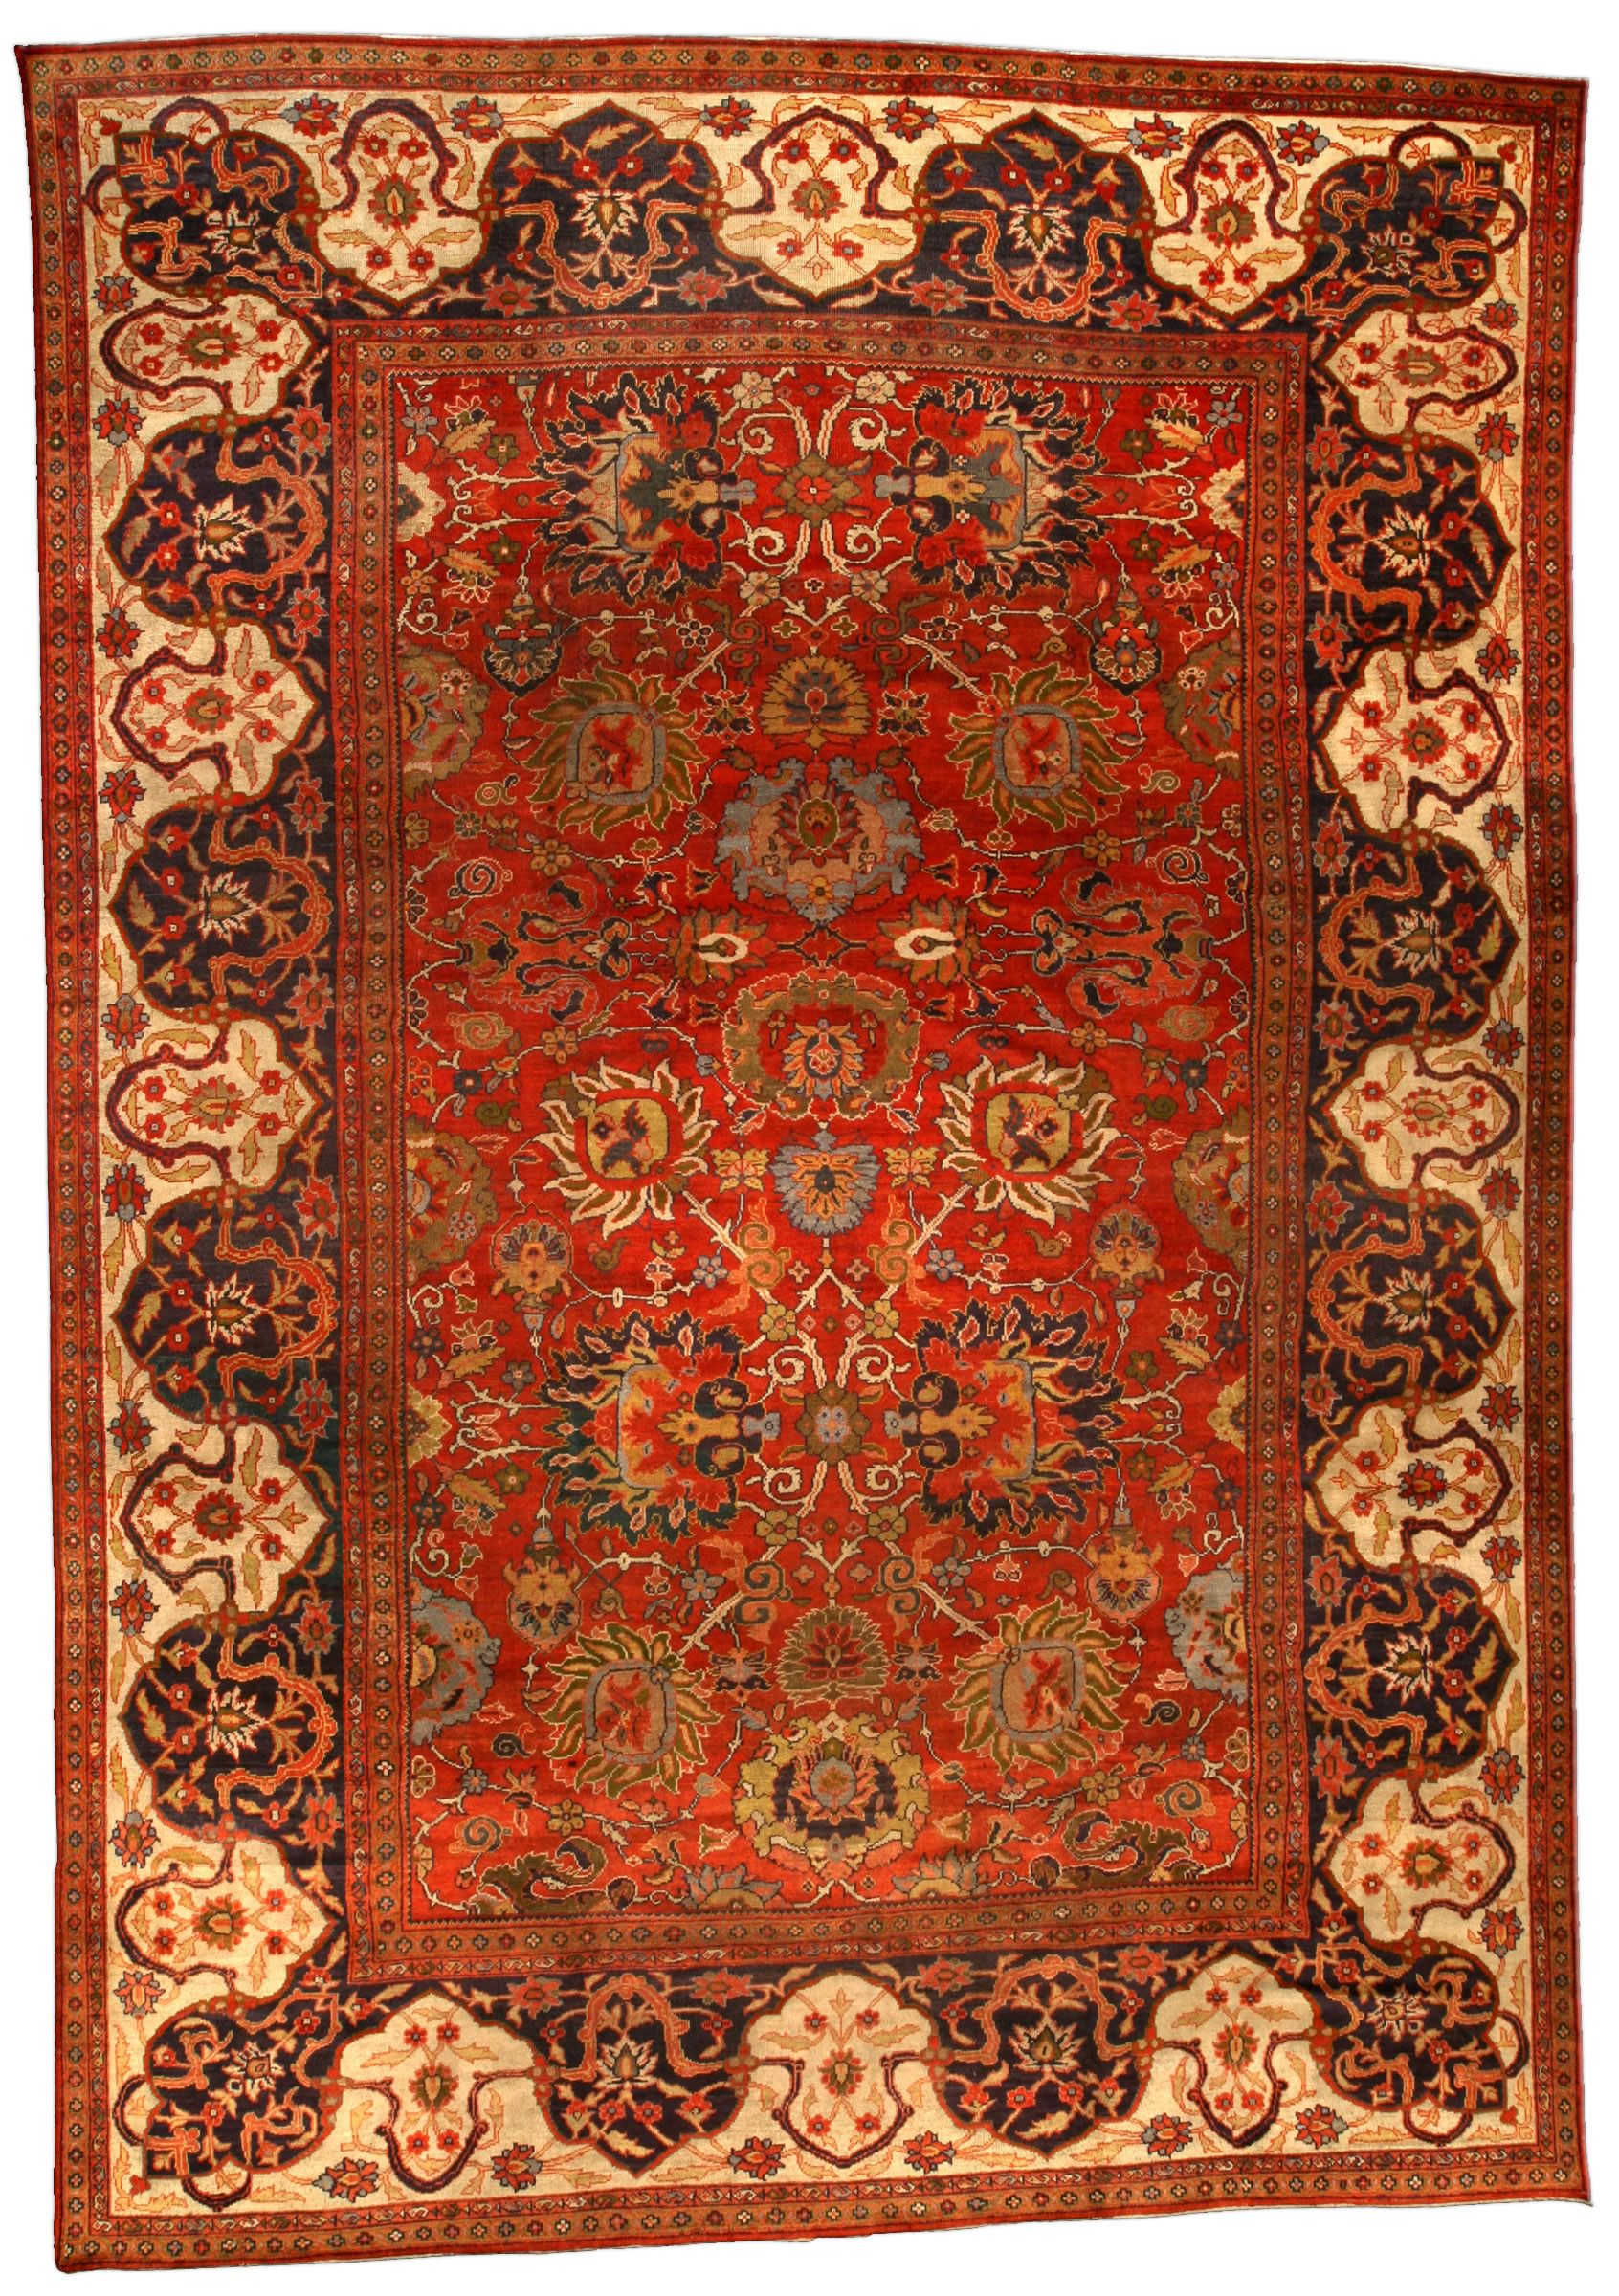 A Late 19th Century Persian Sultanabad Antique Carpet The Tomato Red Field With An Allover Lattice Of Stylized Polych Antique Persian Rug Antique Carpets Rugs